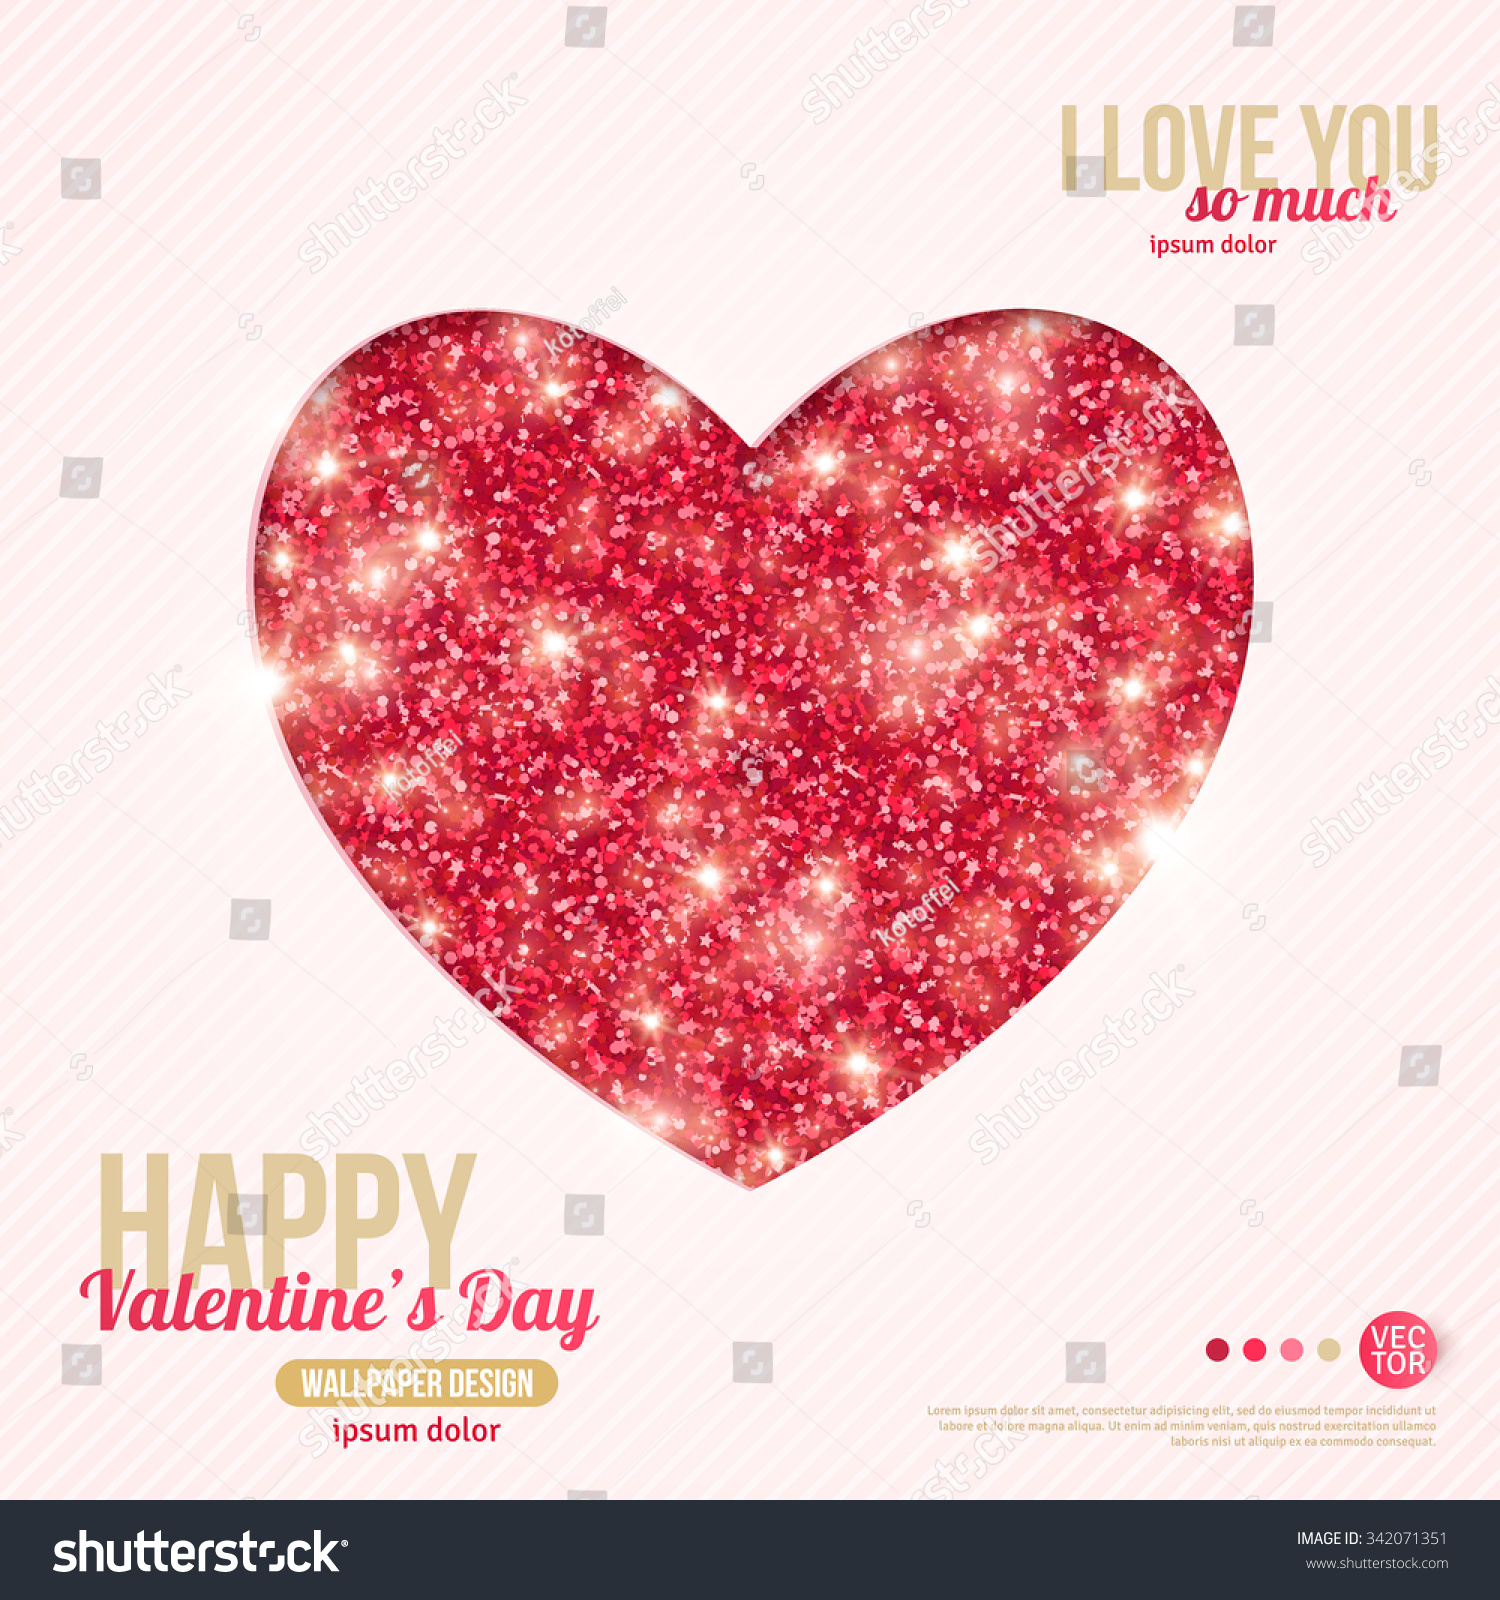 Happy valentines day greeting card vector stock vector royalty free happy valentines day greeting card vector illustration heart shape design template m4hsunfo